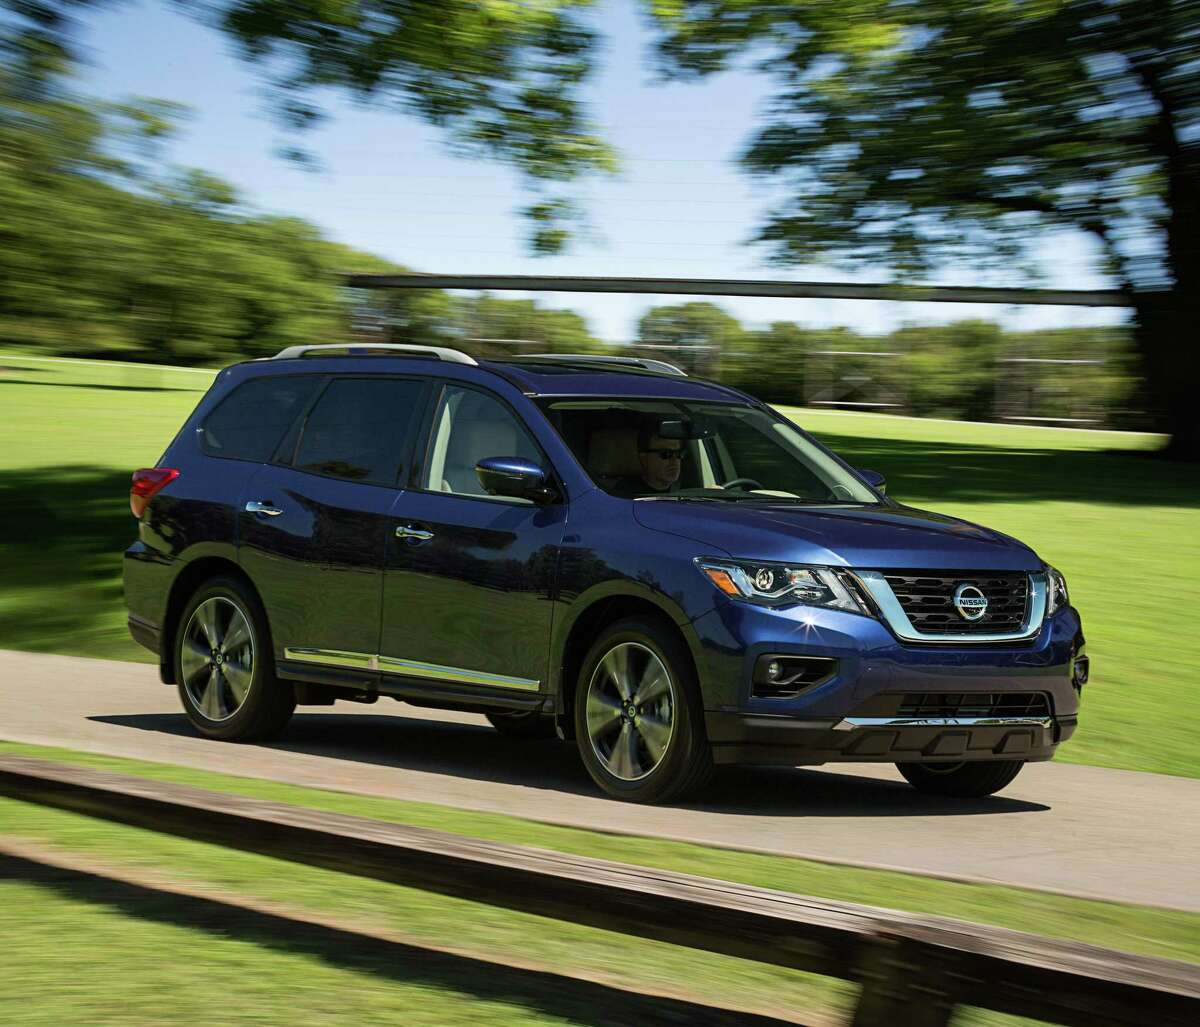 The 2020 Pathfinder Rock Creek Edition offers unique exterior and interior treatments that emphasize the rugged Pathfinder heritage.